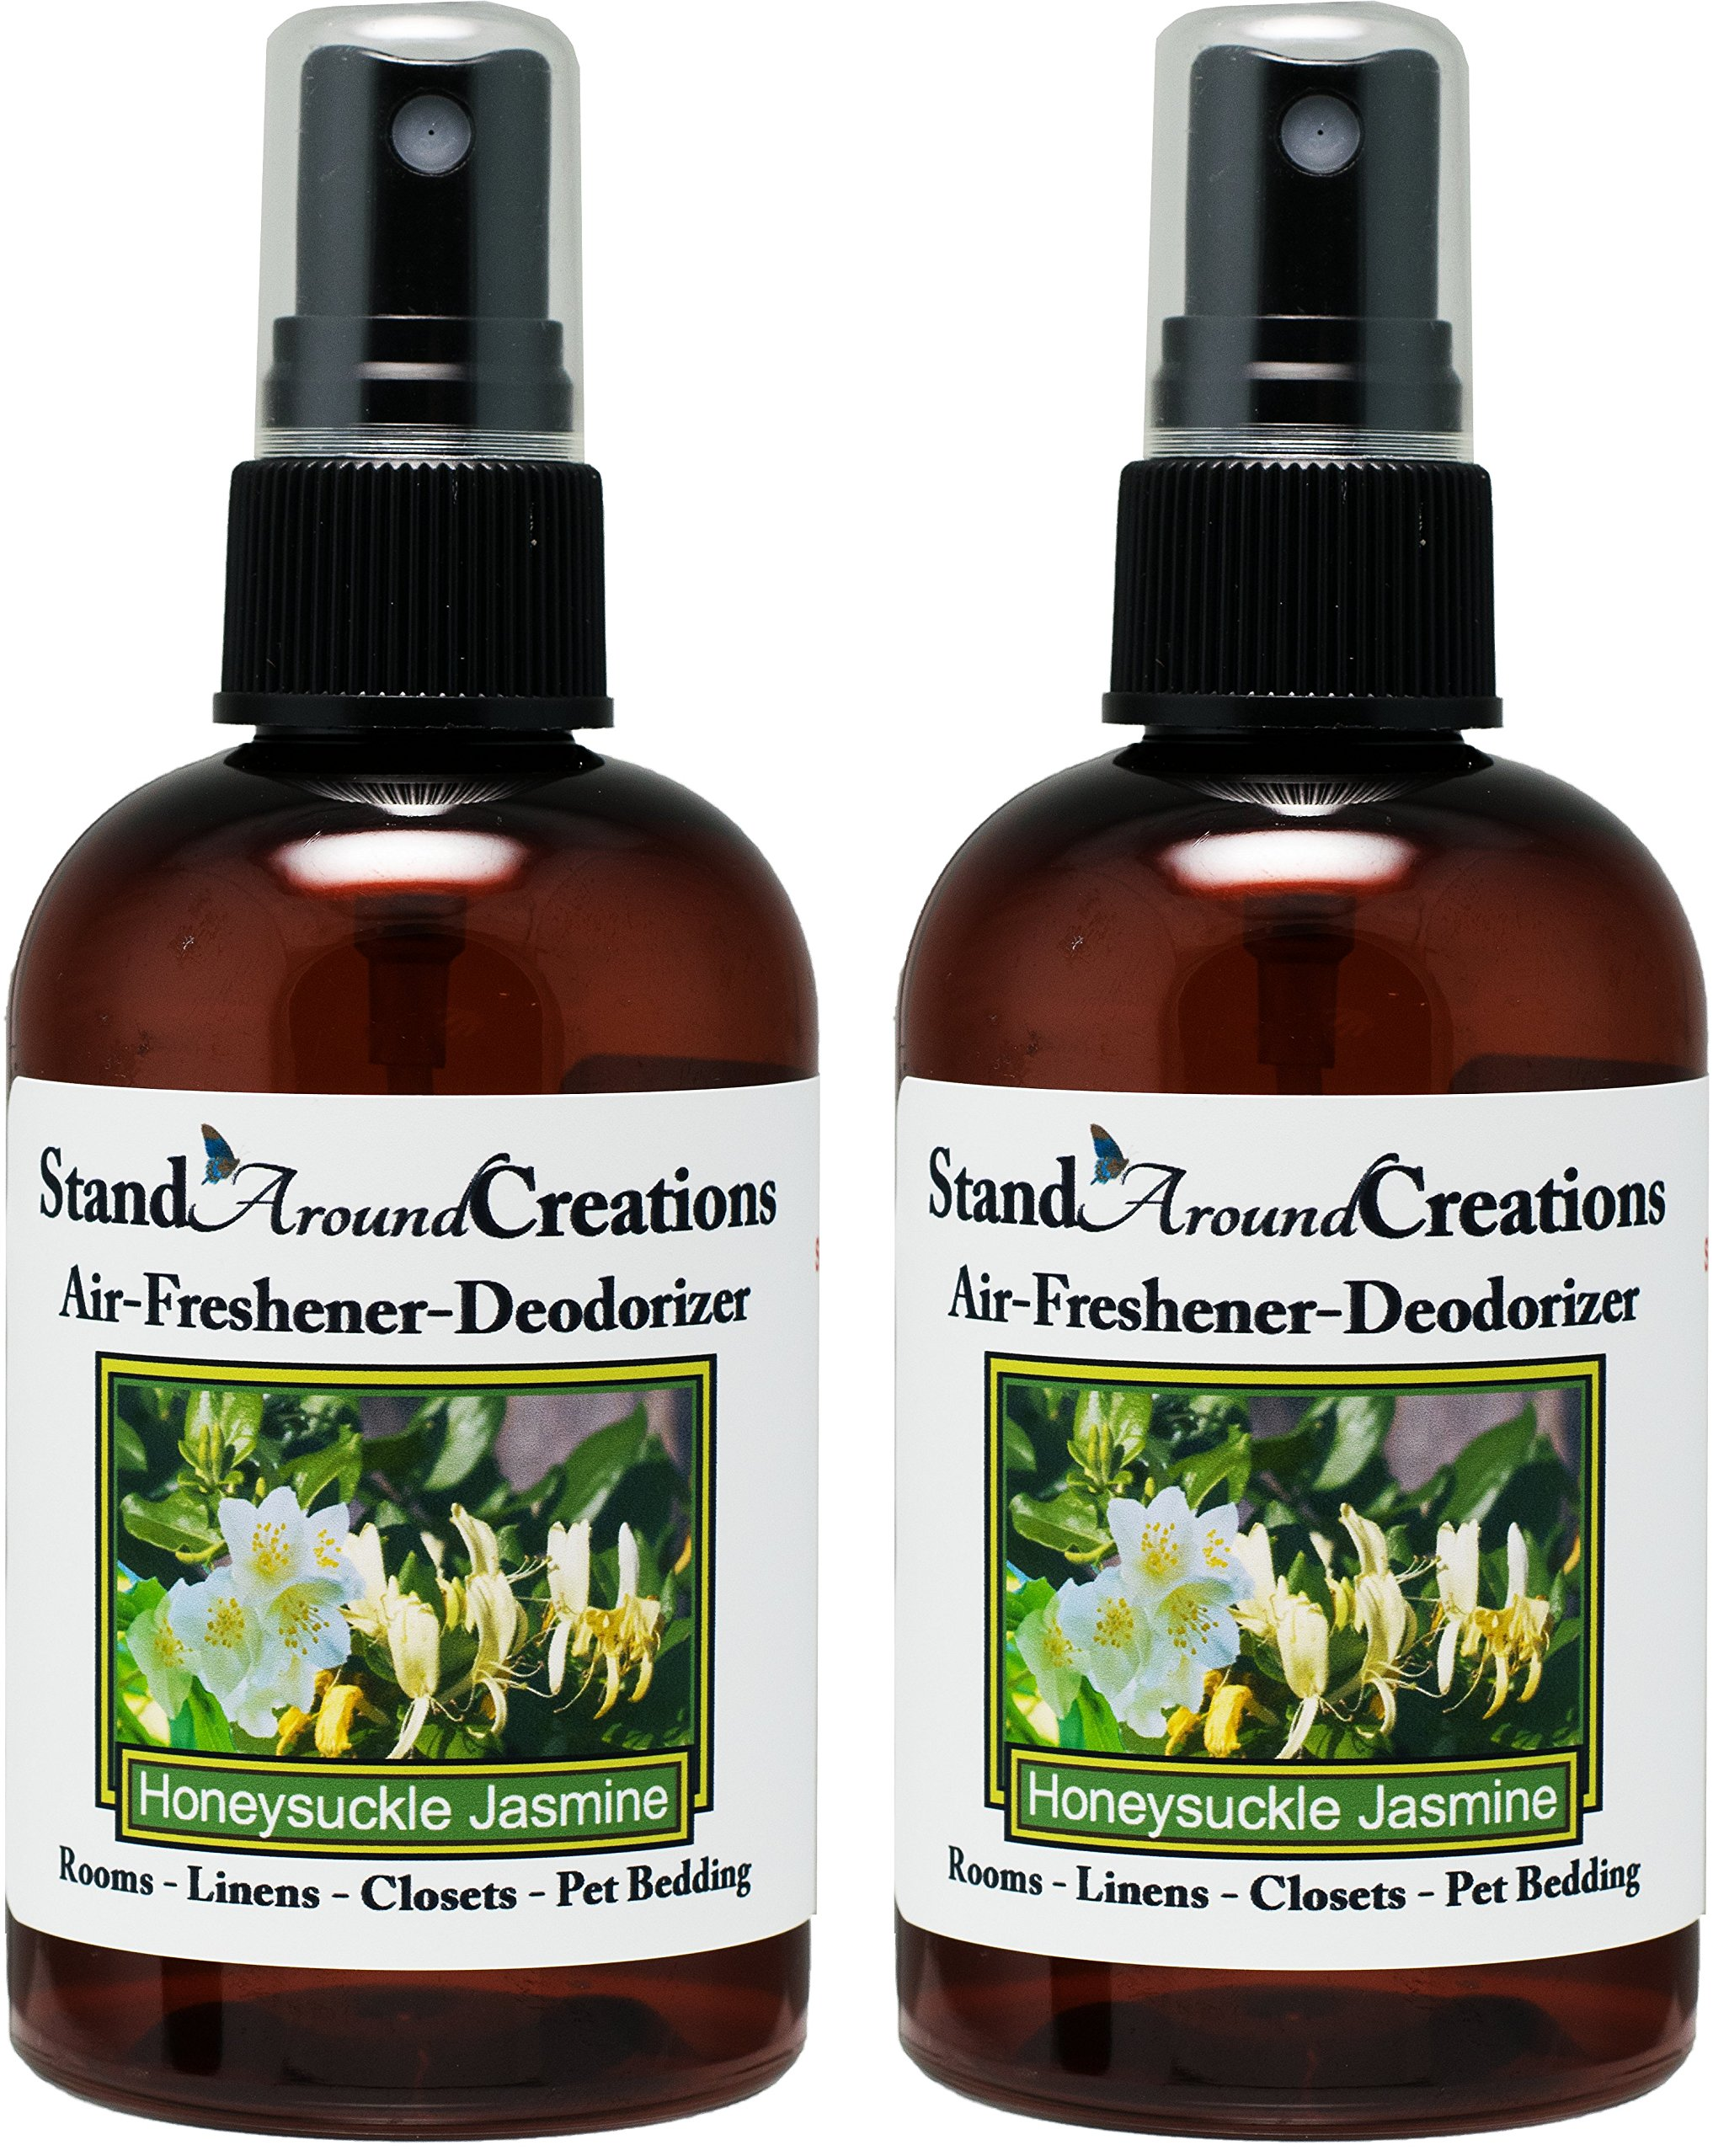 Stand Around Creations Set of 2-4-oz.-Concentrated Spray Air-Freshener/Deodorizer - Scent: Honeysuckle/Jasmine - Great for: Cars, Offices, Air-Conditioners, Litter Boxes, locker & laundry rooms